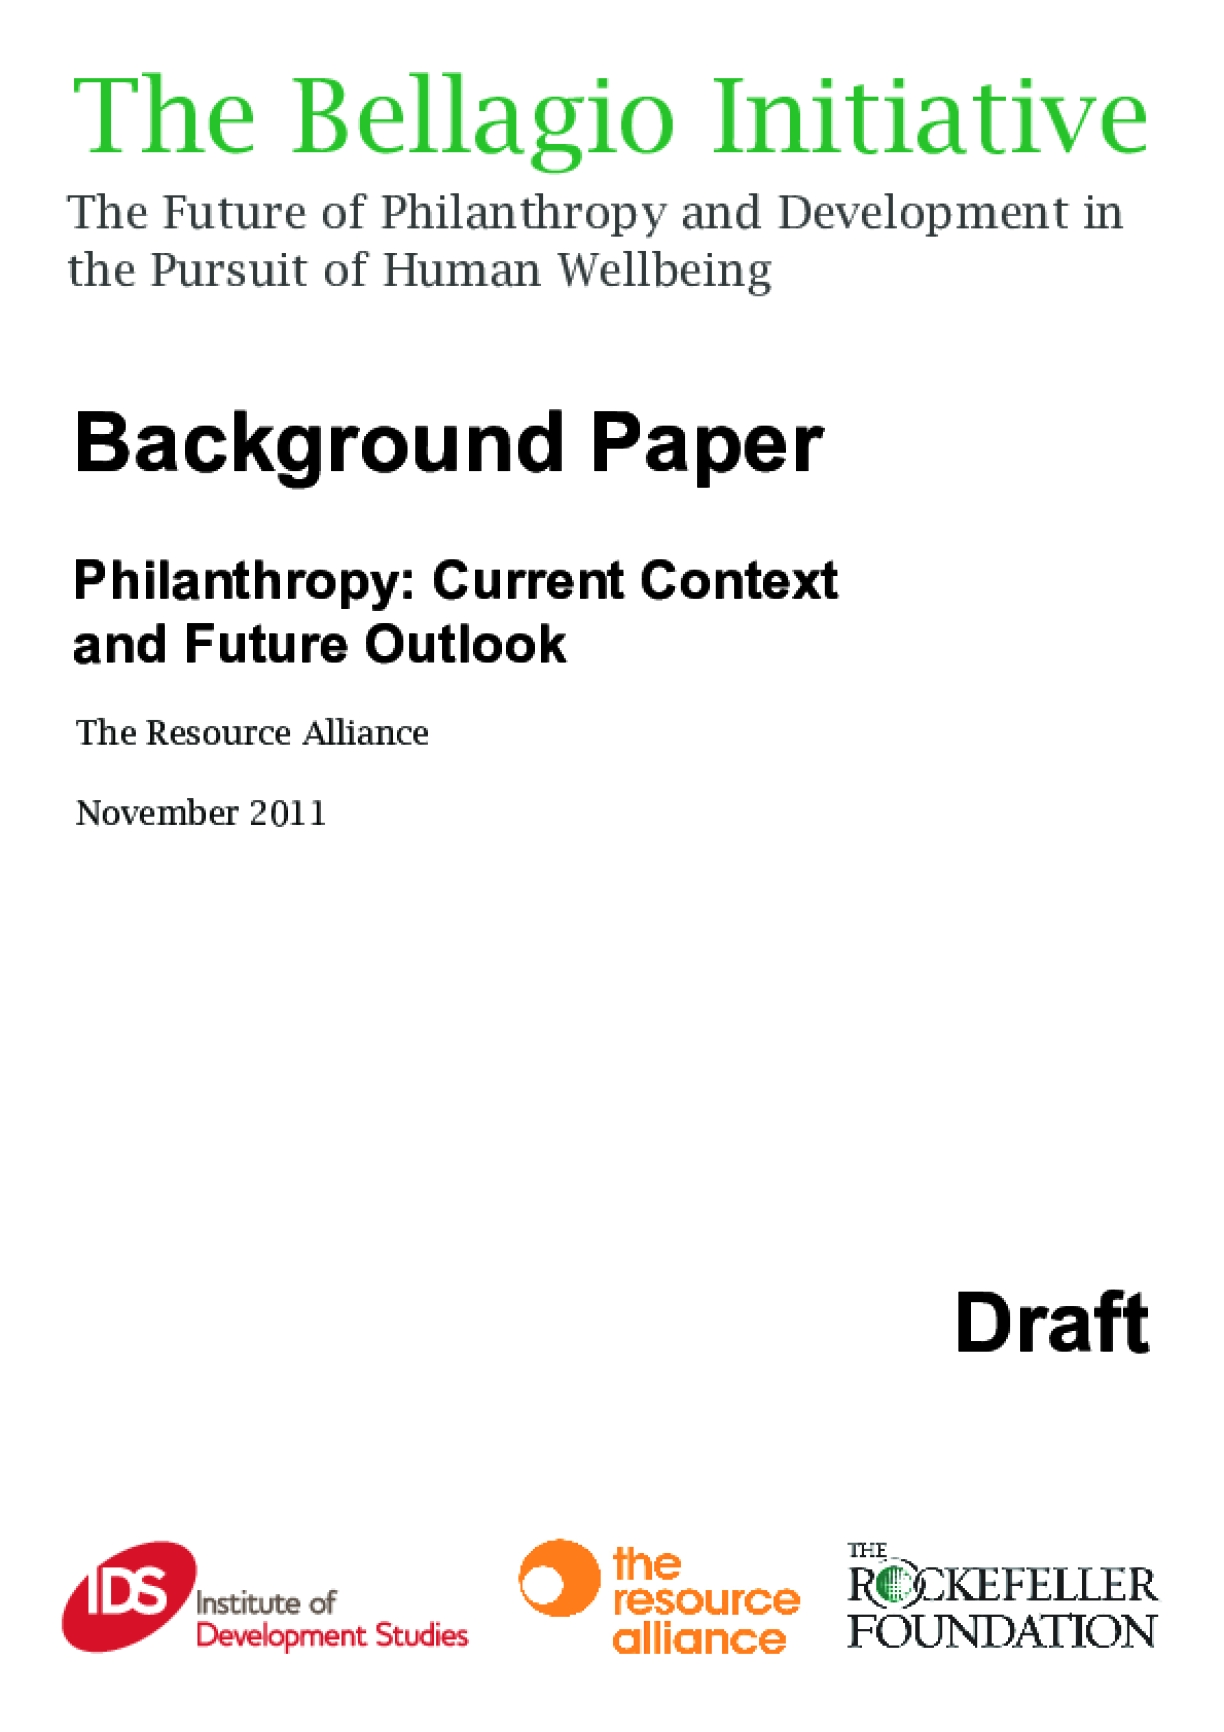 Philanthropy: Current Context and Future Outlook